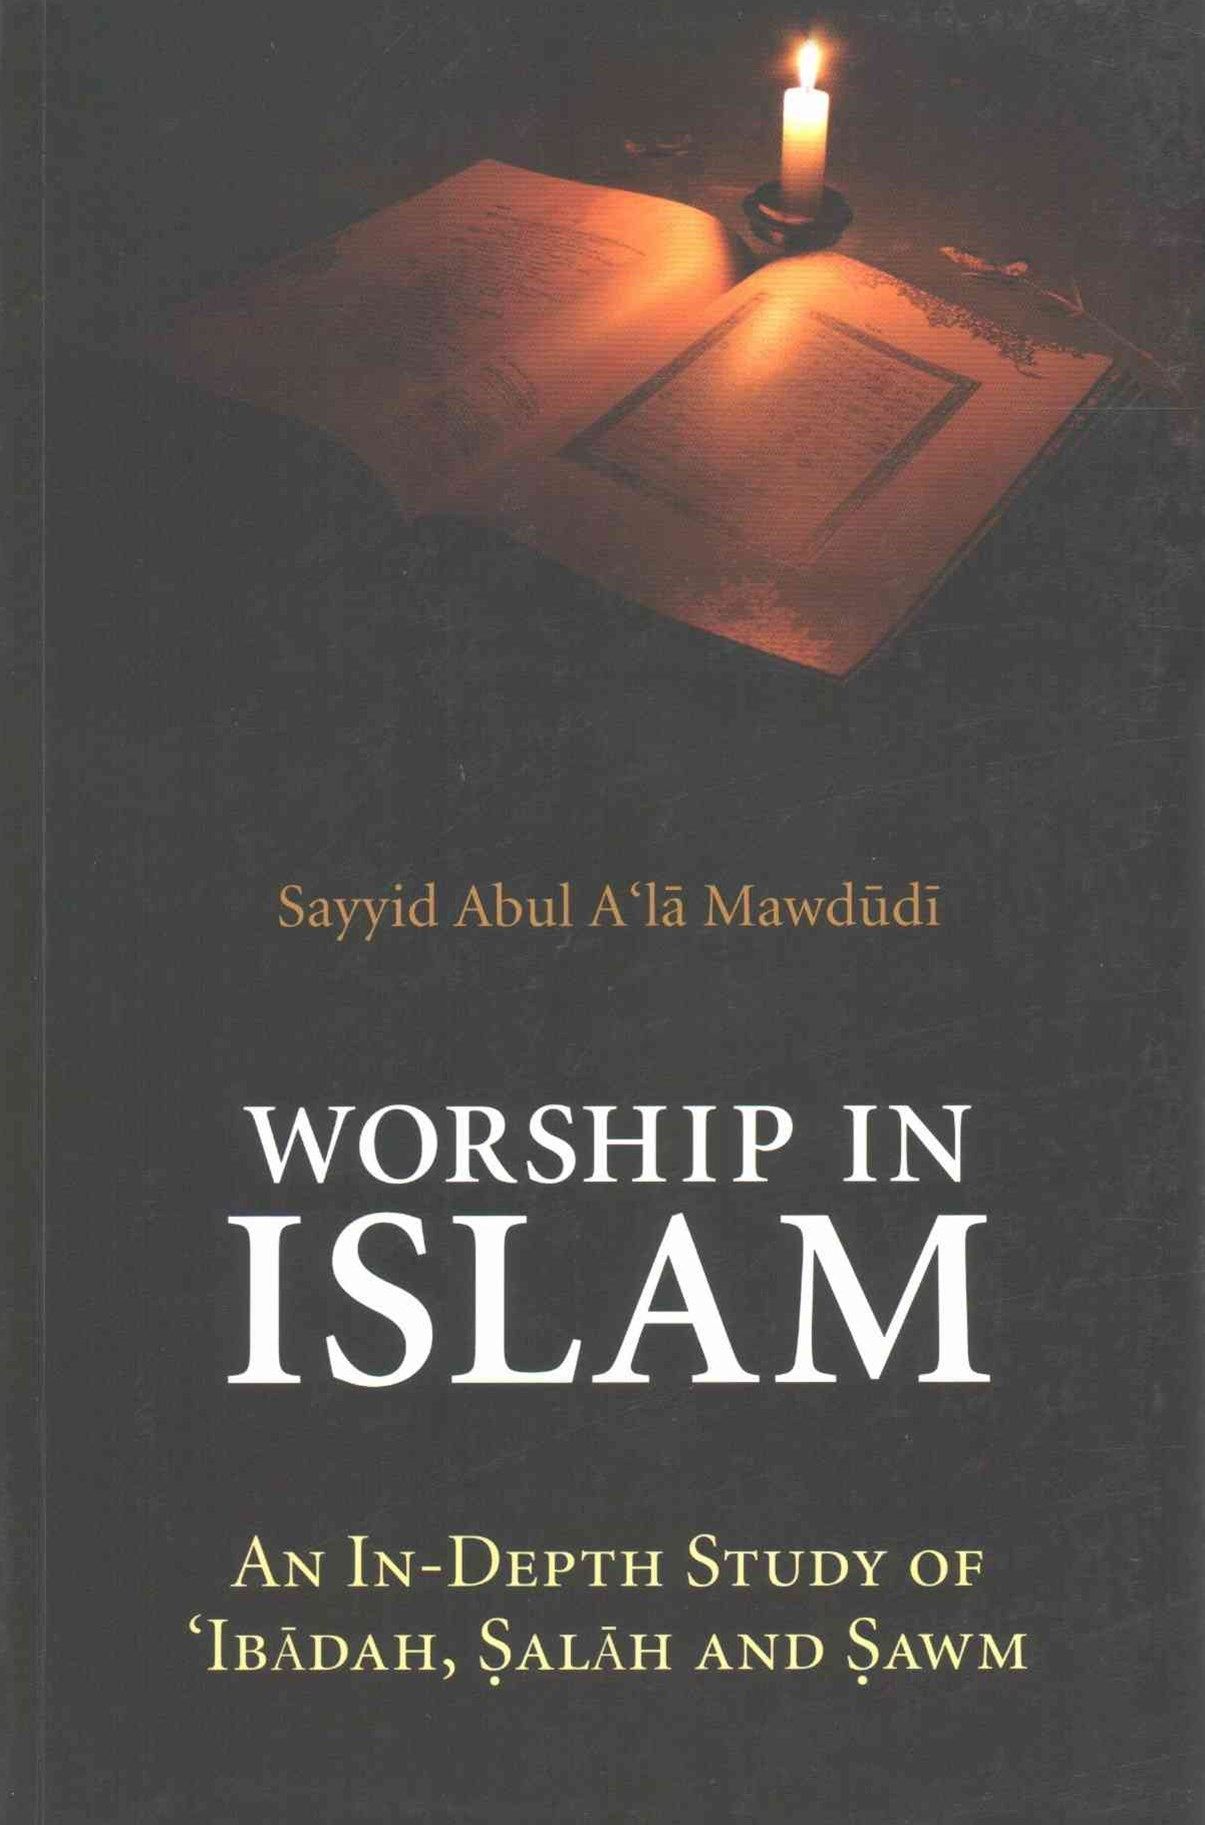 Worship in Islam